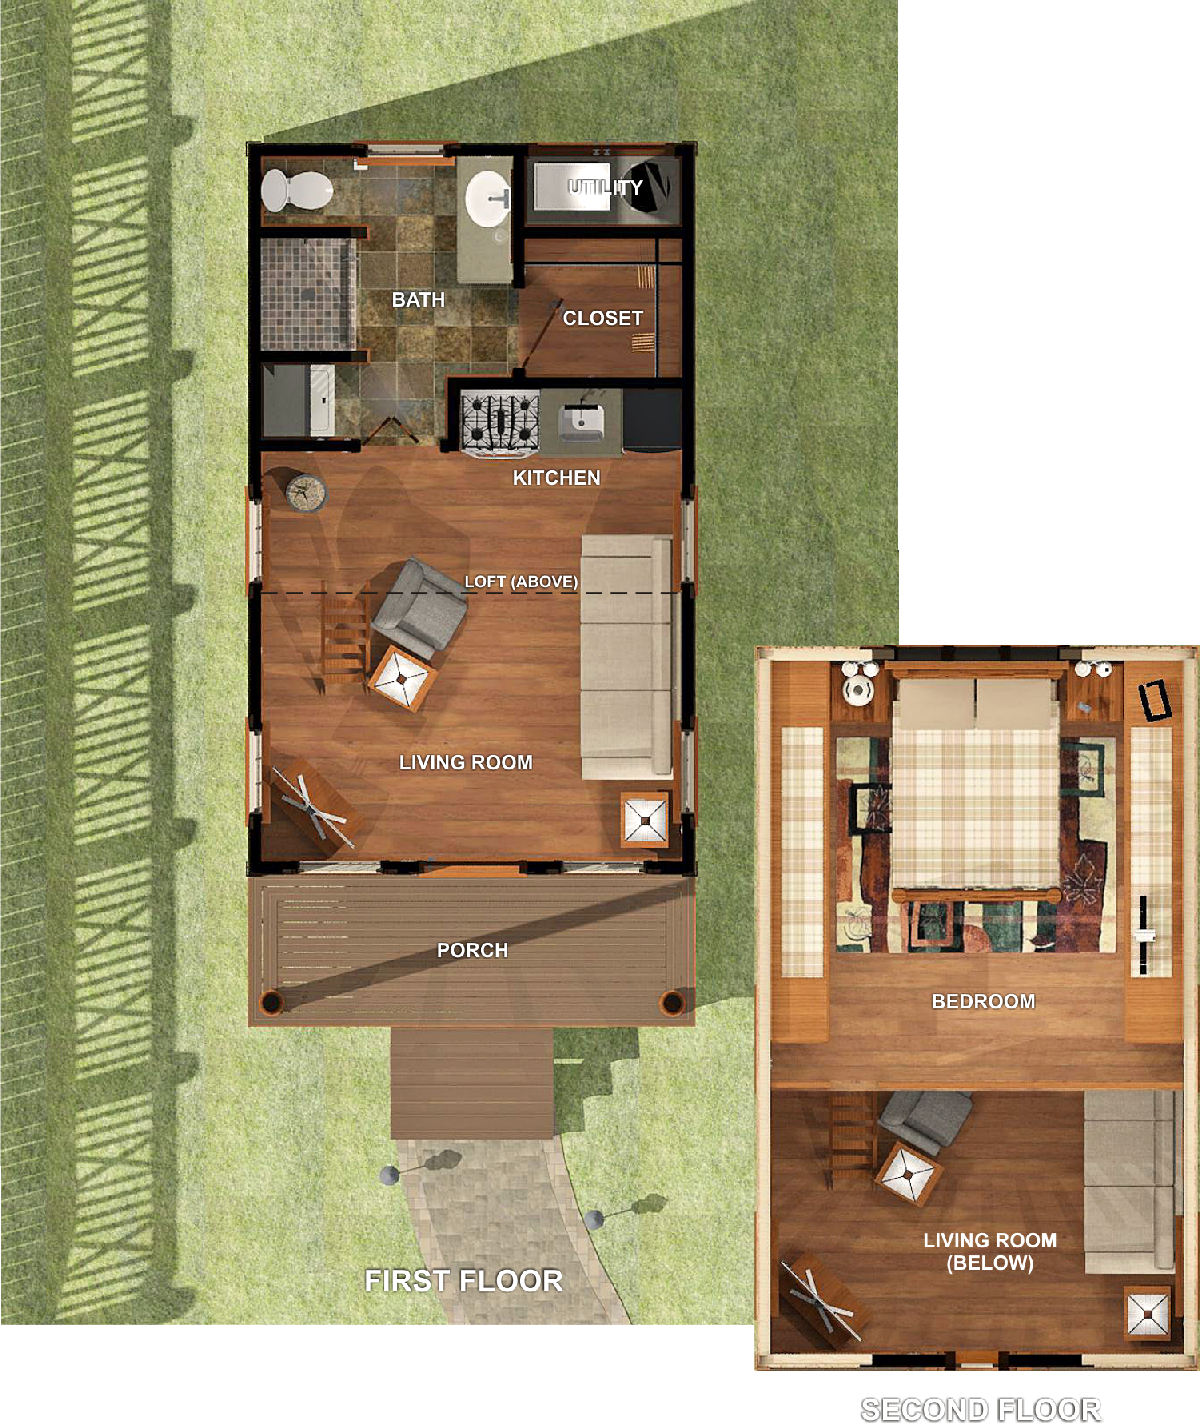 Texas tiny homes plan 448 Tiny little house plans